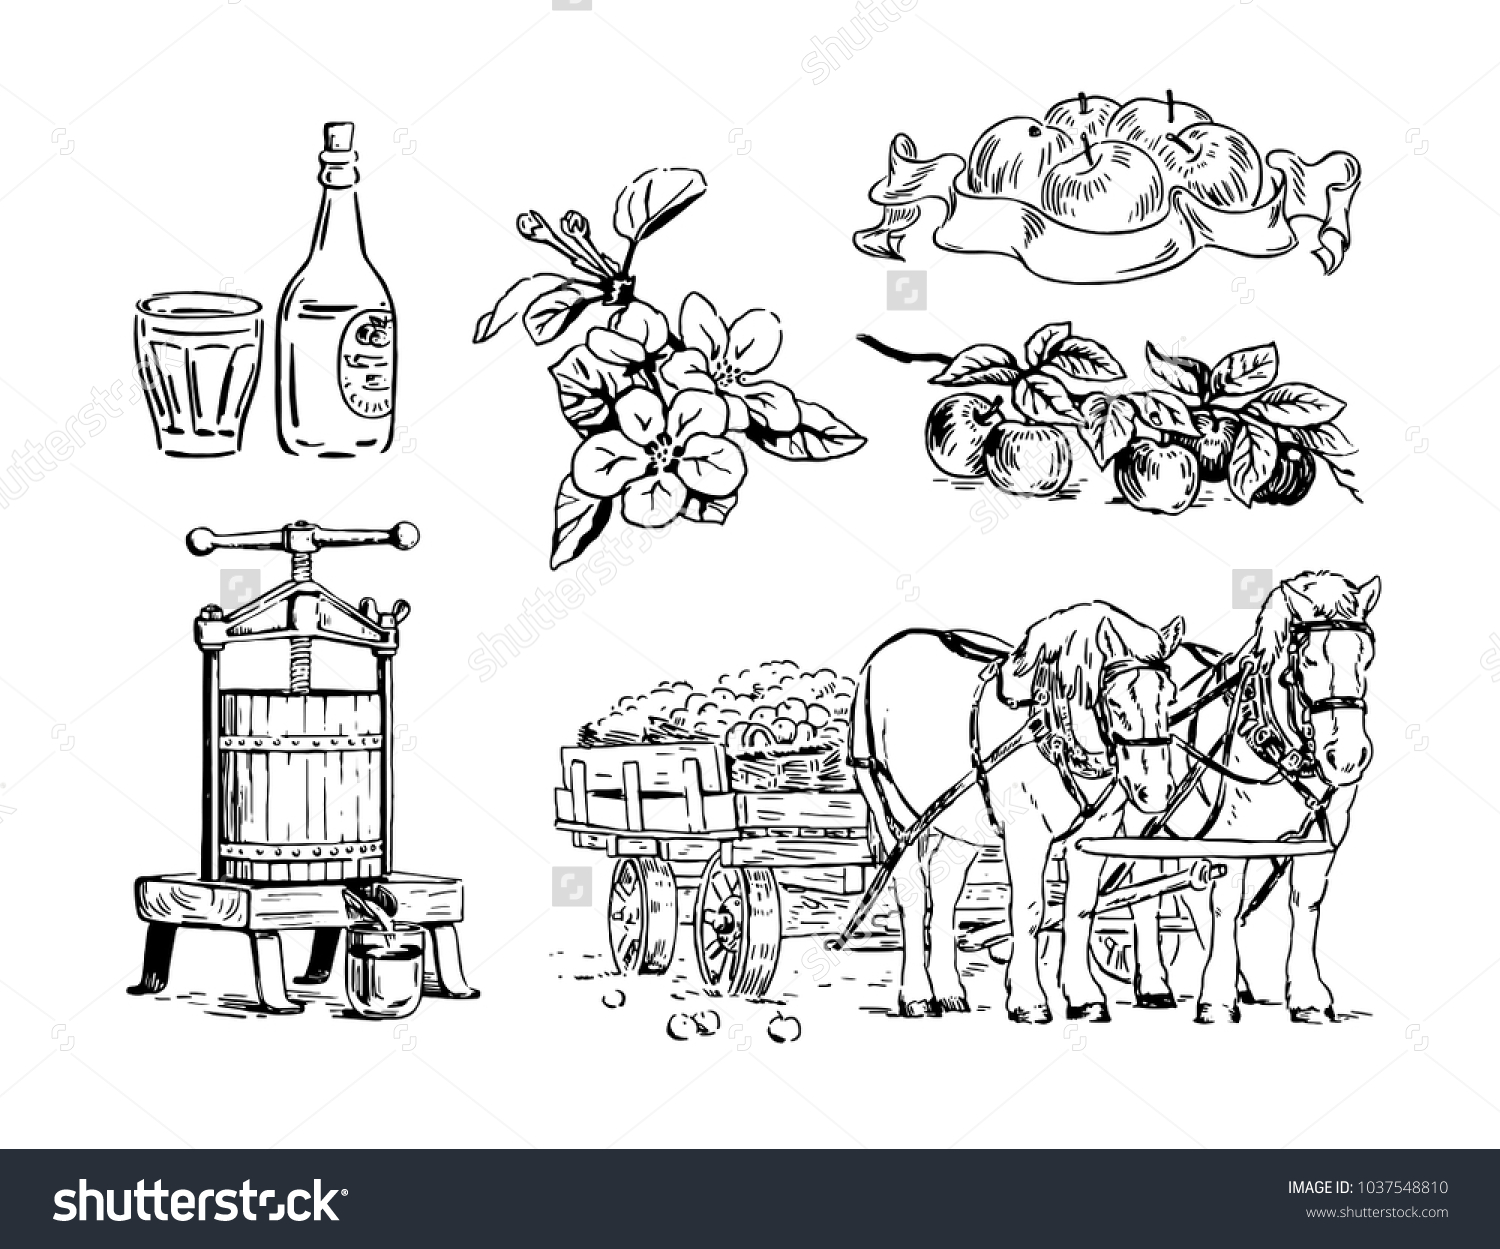 hight resolution of cartoon illustration of apple branches flowers press for squeezing horse cart bottle